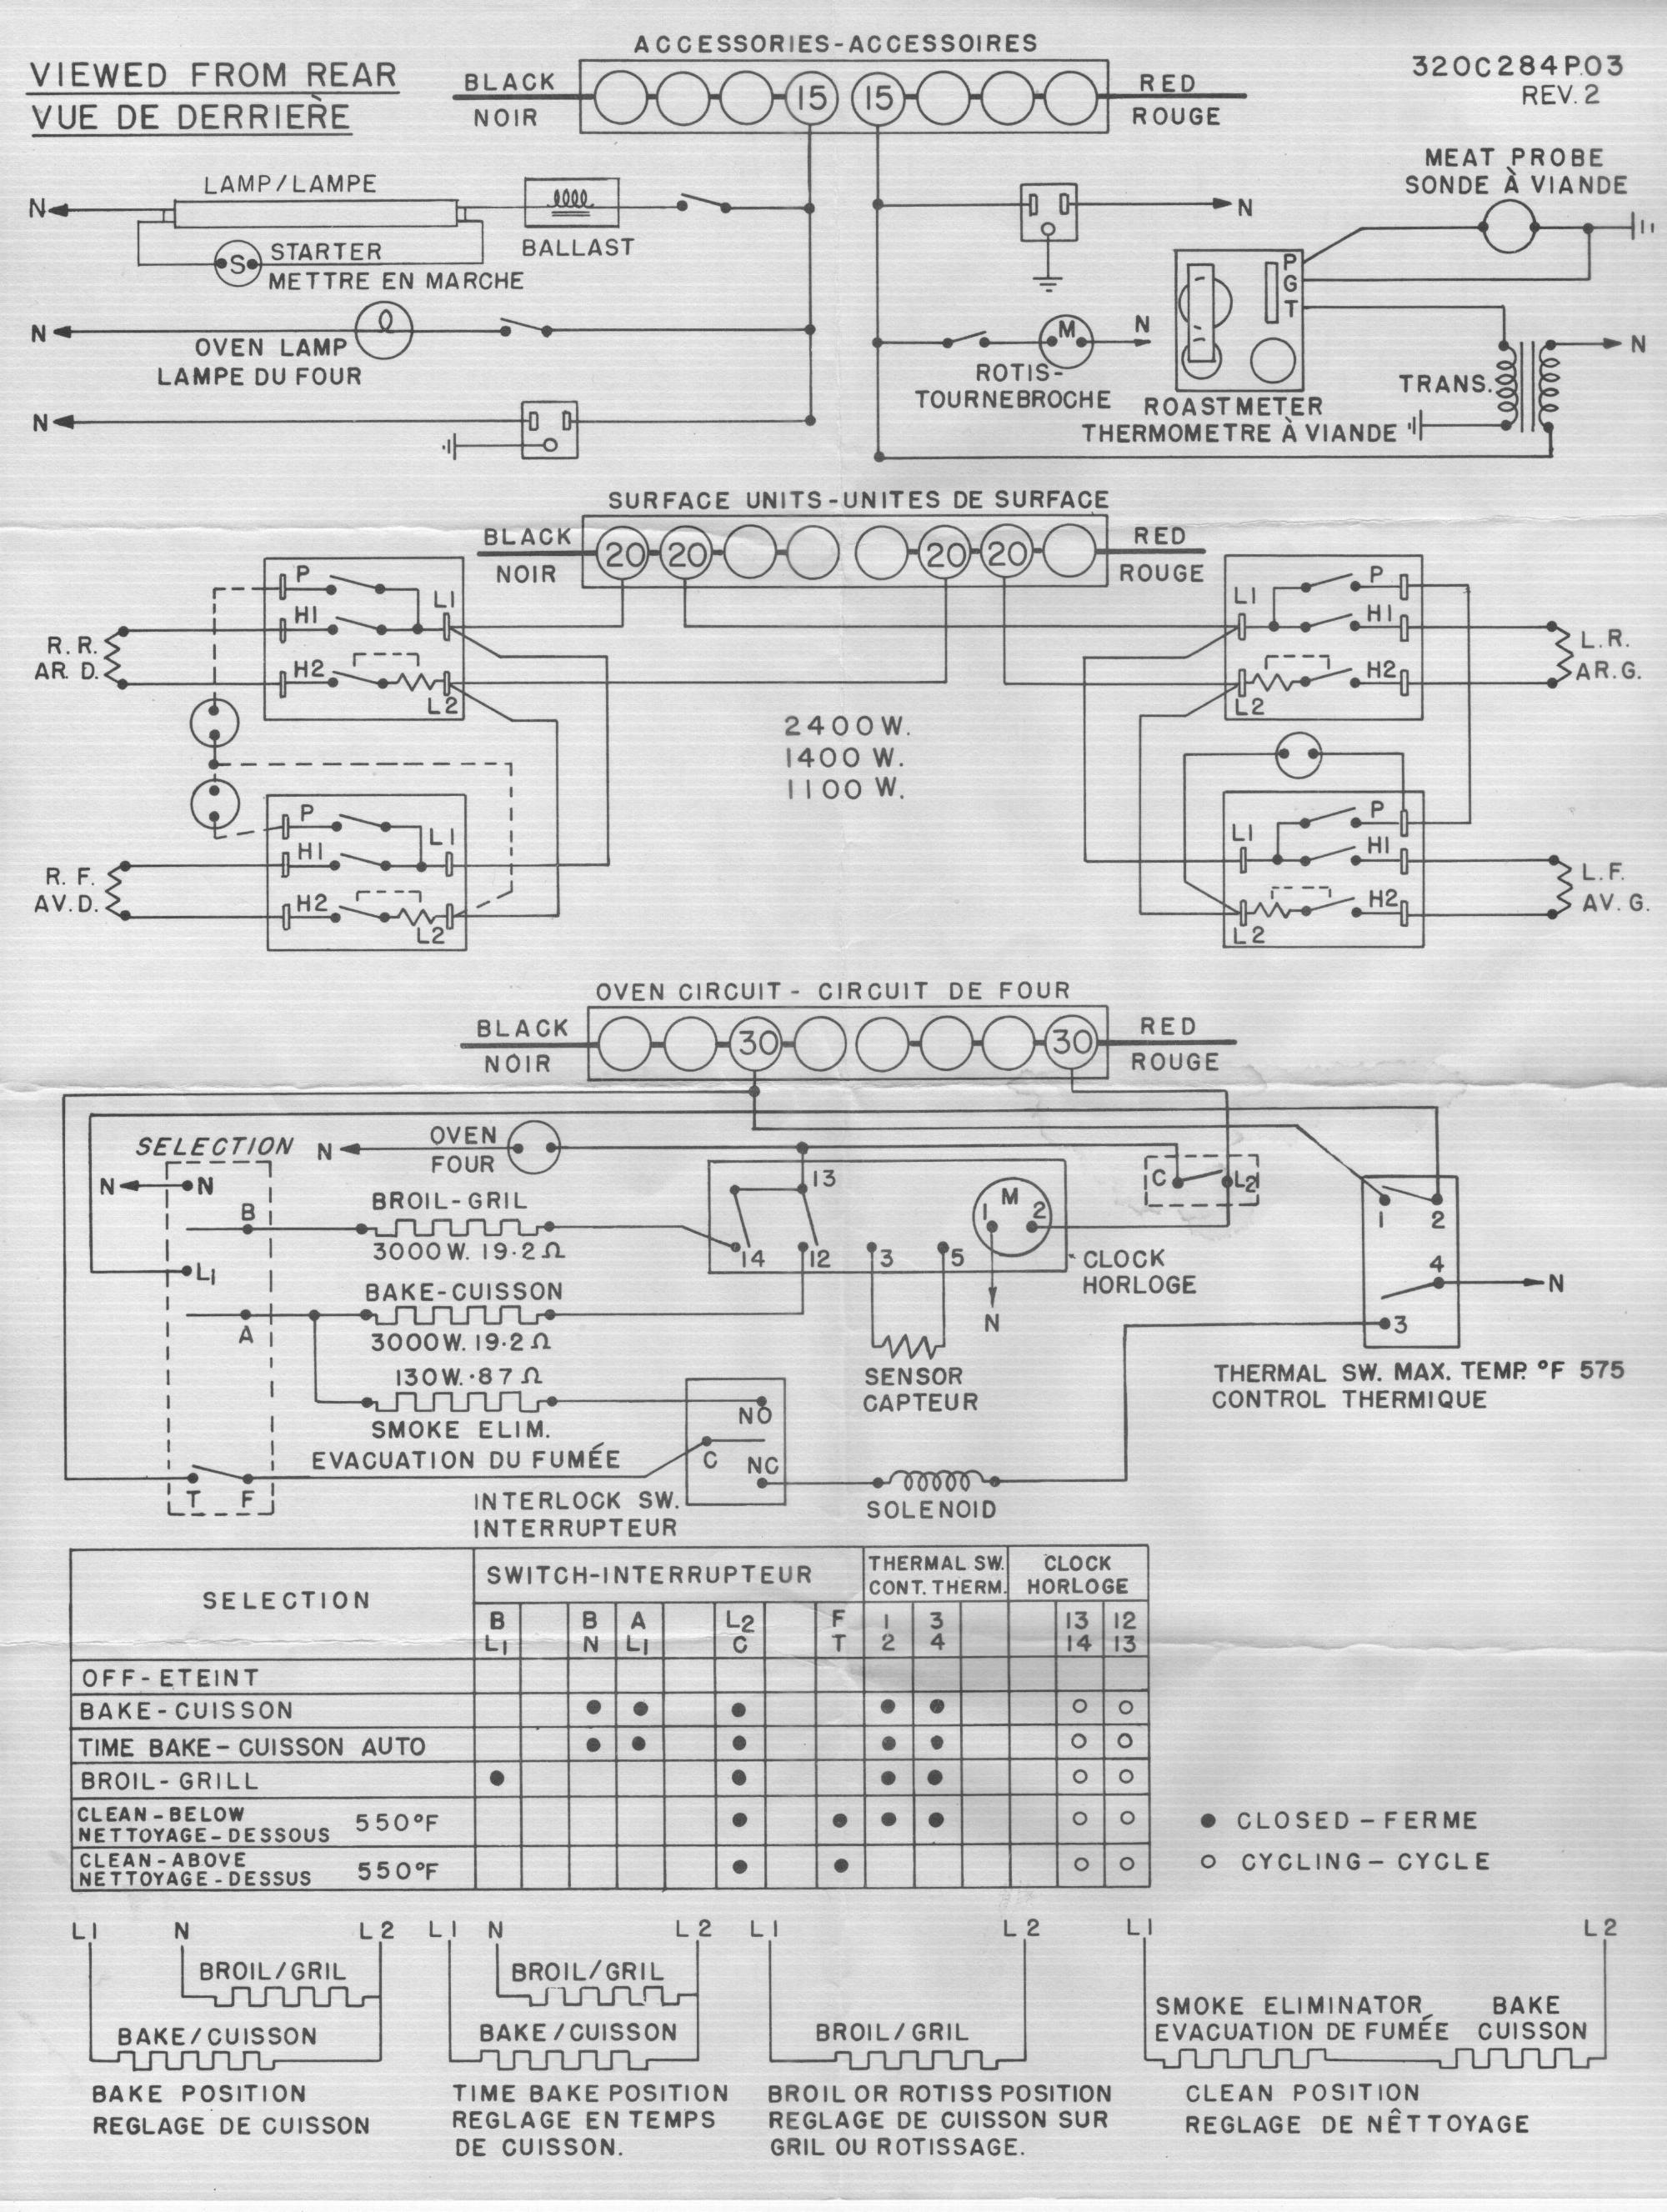 hight resolution of element switch wb21x5243 sample wire diagram from an older moffat canadian